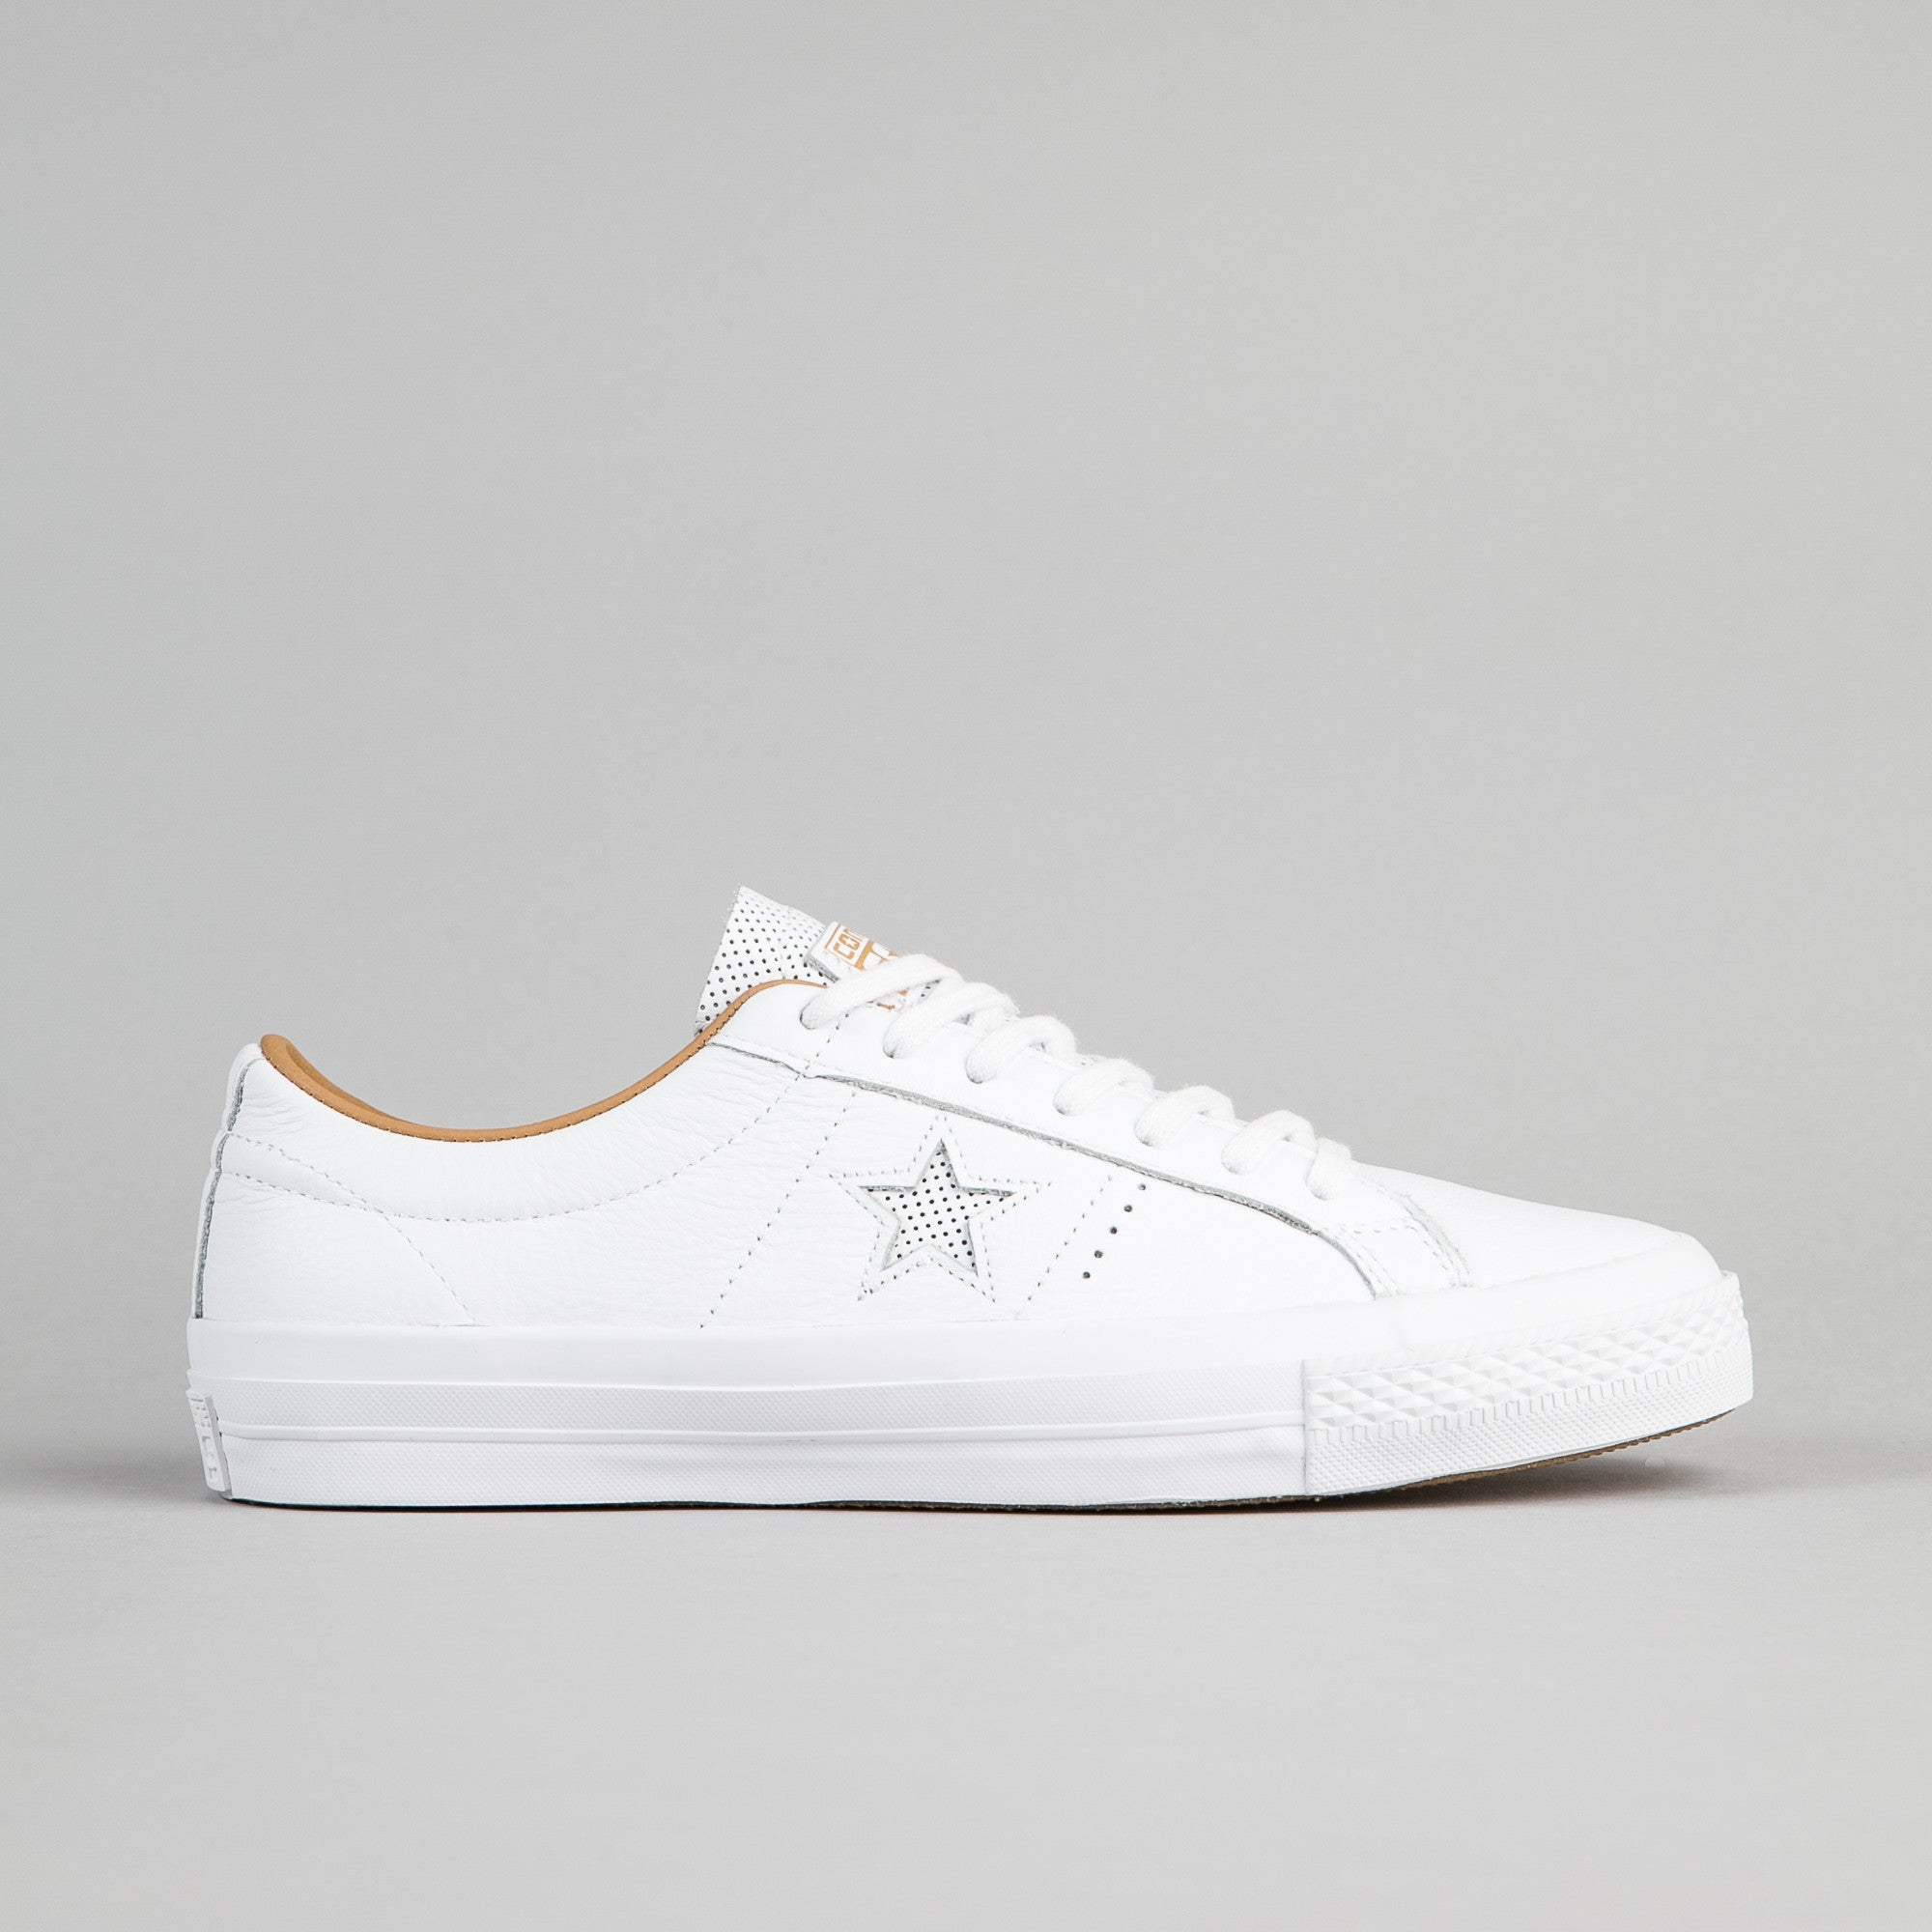 e7b26c193e01 Converse One Star Leather OX Shoes - White   Sand Dune